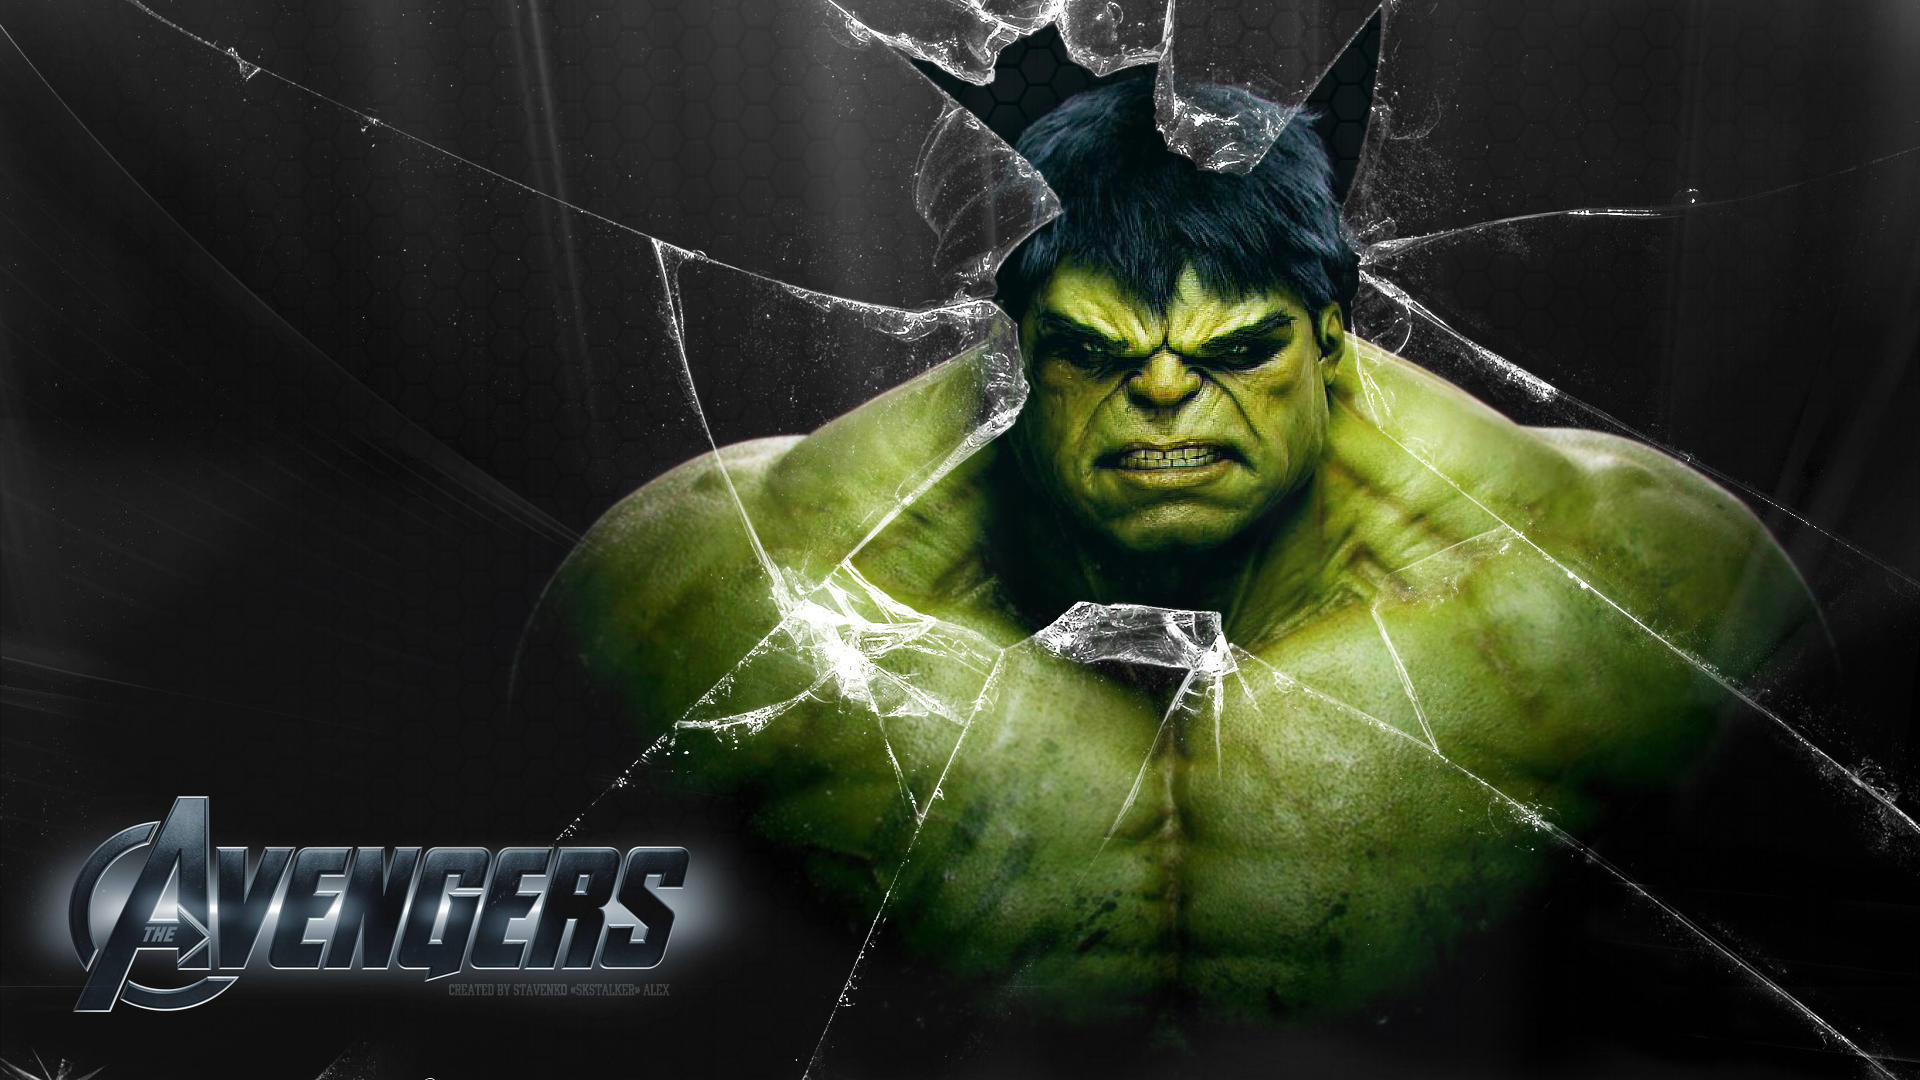 Avengers Hulk Wallpaper 1080p by SKstalker on DeviantArt